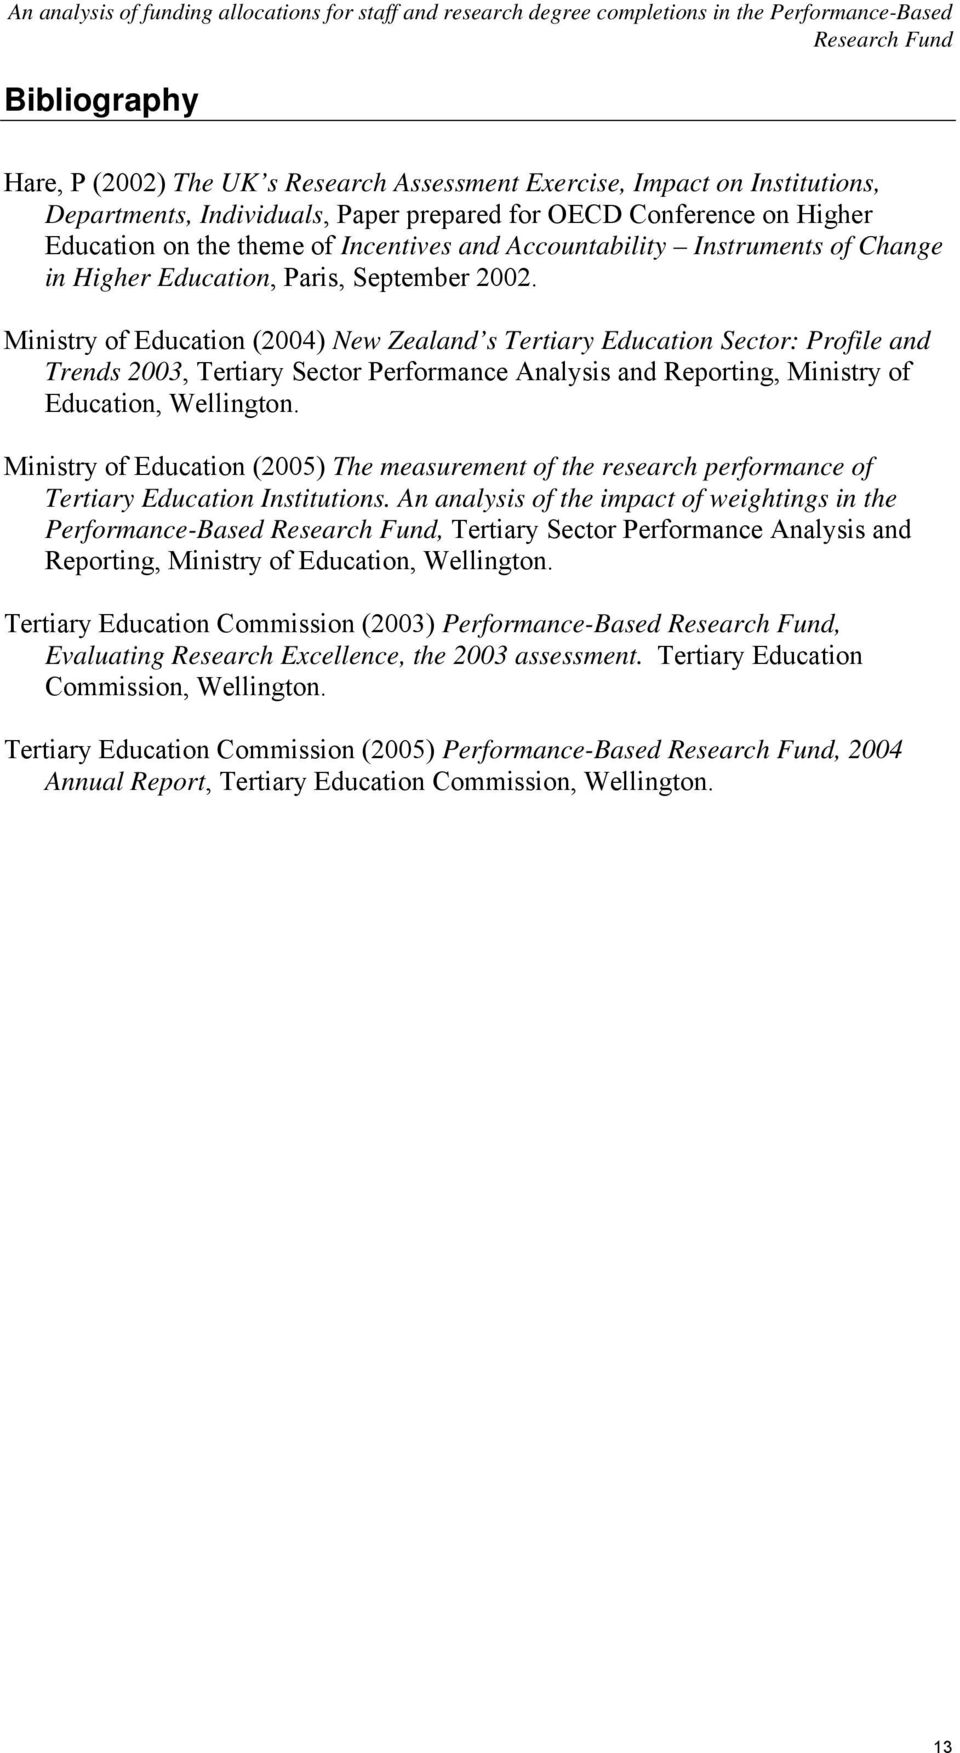 Ministry of Education (2004) New Zealand s Tertiary Education Sector: Profile and Trends 2003, Tertiary Sector Performance Analysis and Reporting, Ministry of Education, Wellington.